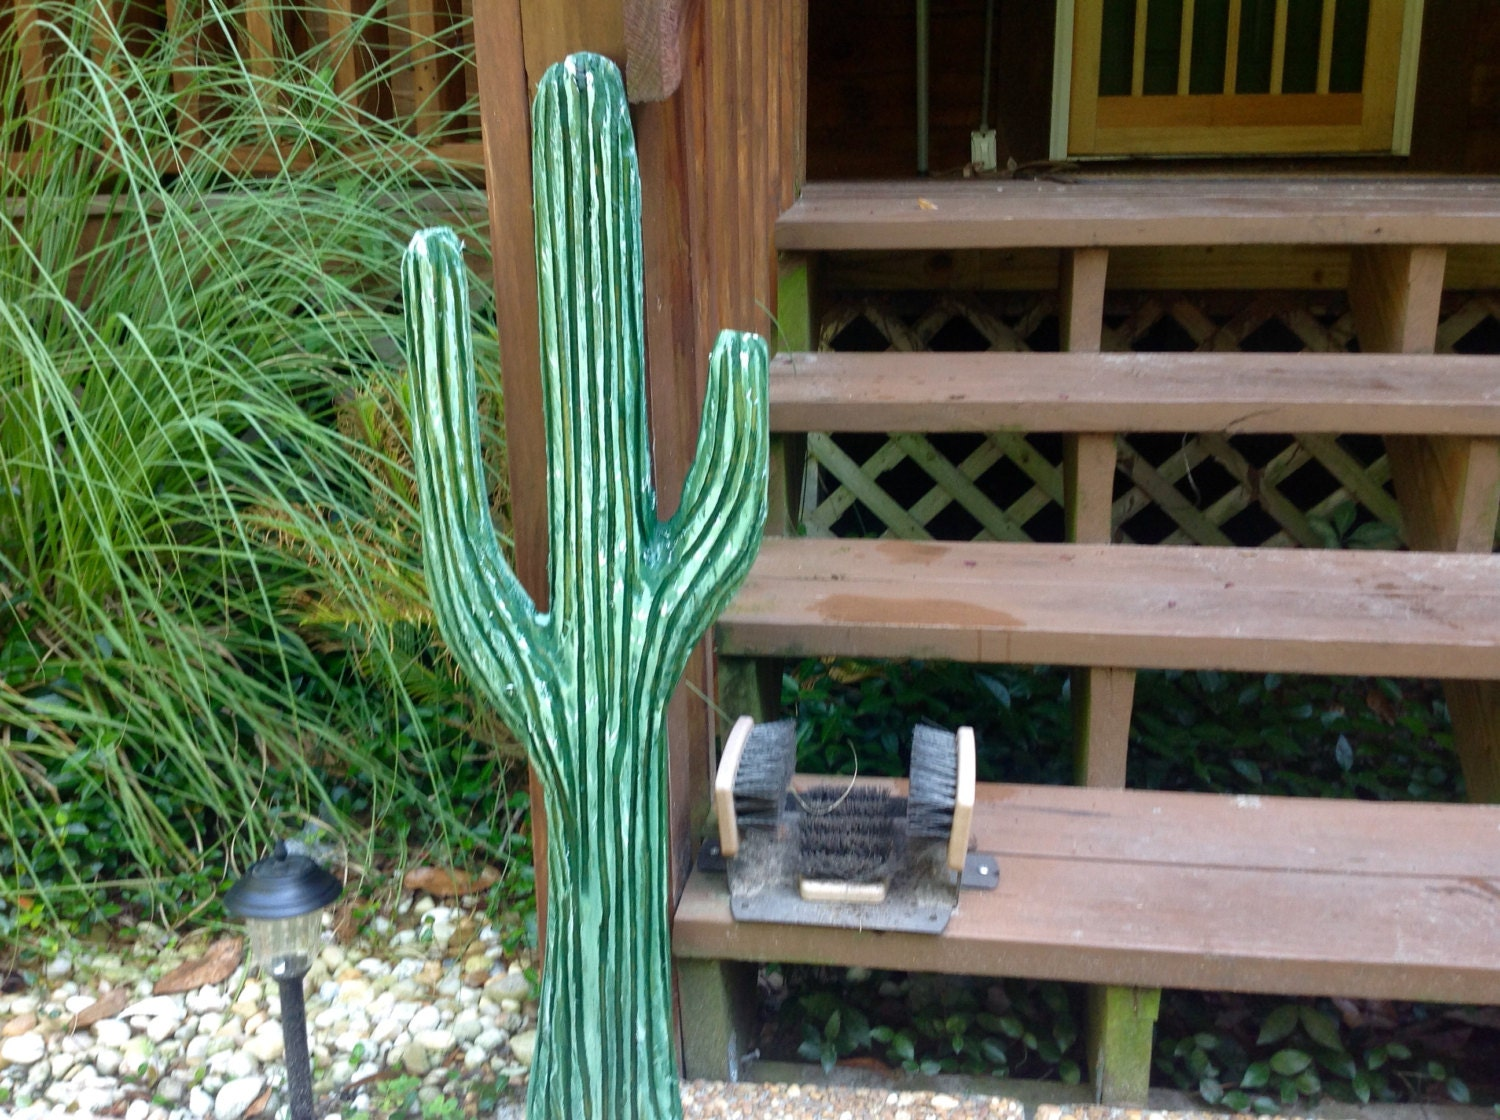 Cactus 3ft chainsaw sequoia cacti western carving indoor ... on Sequoia Outdoor Living id=36655